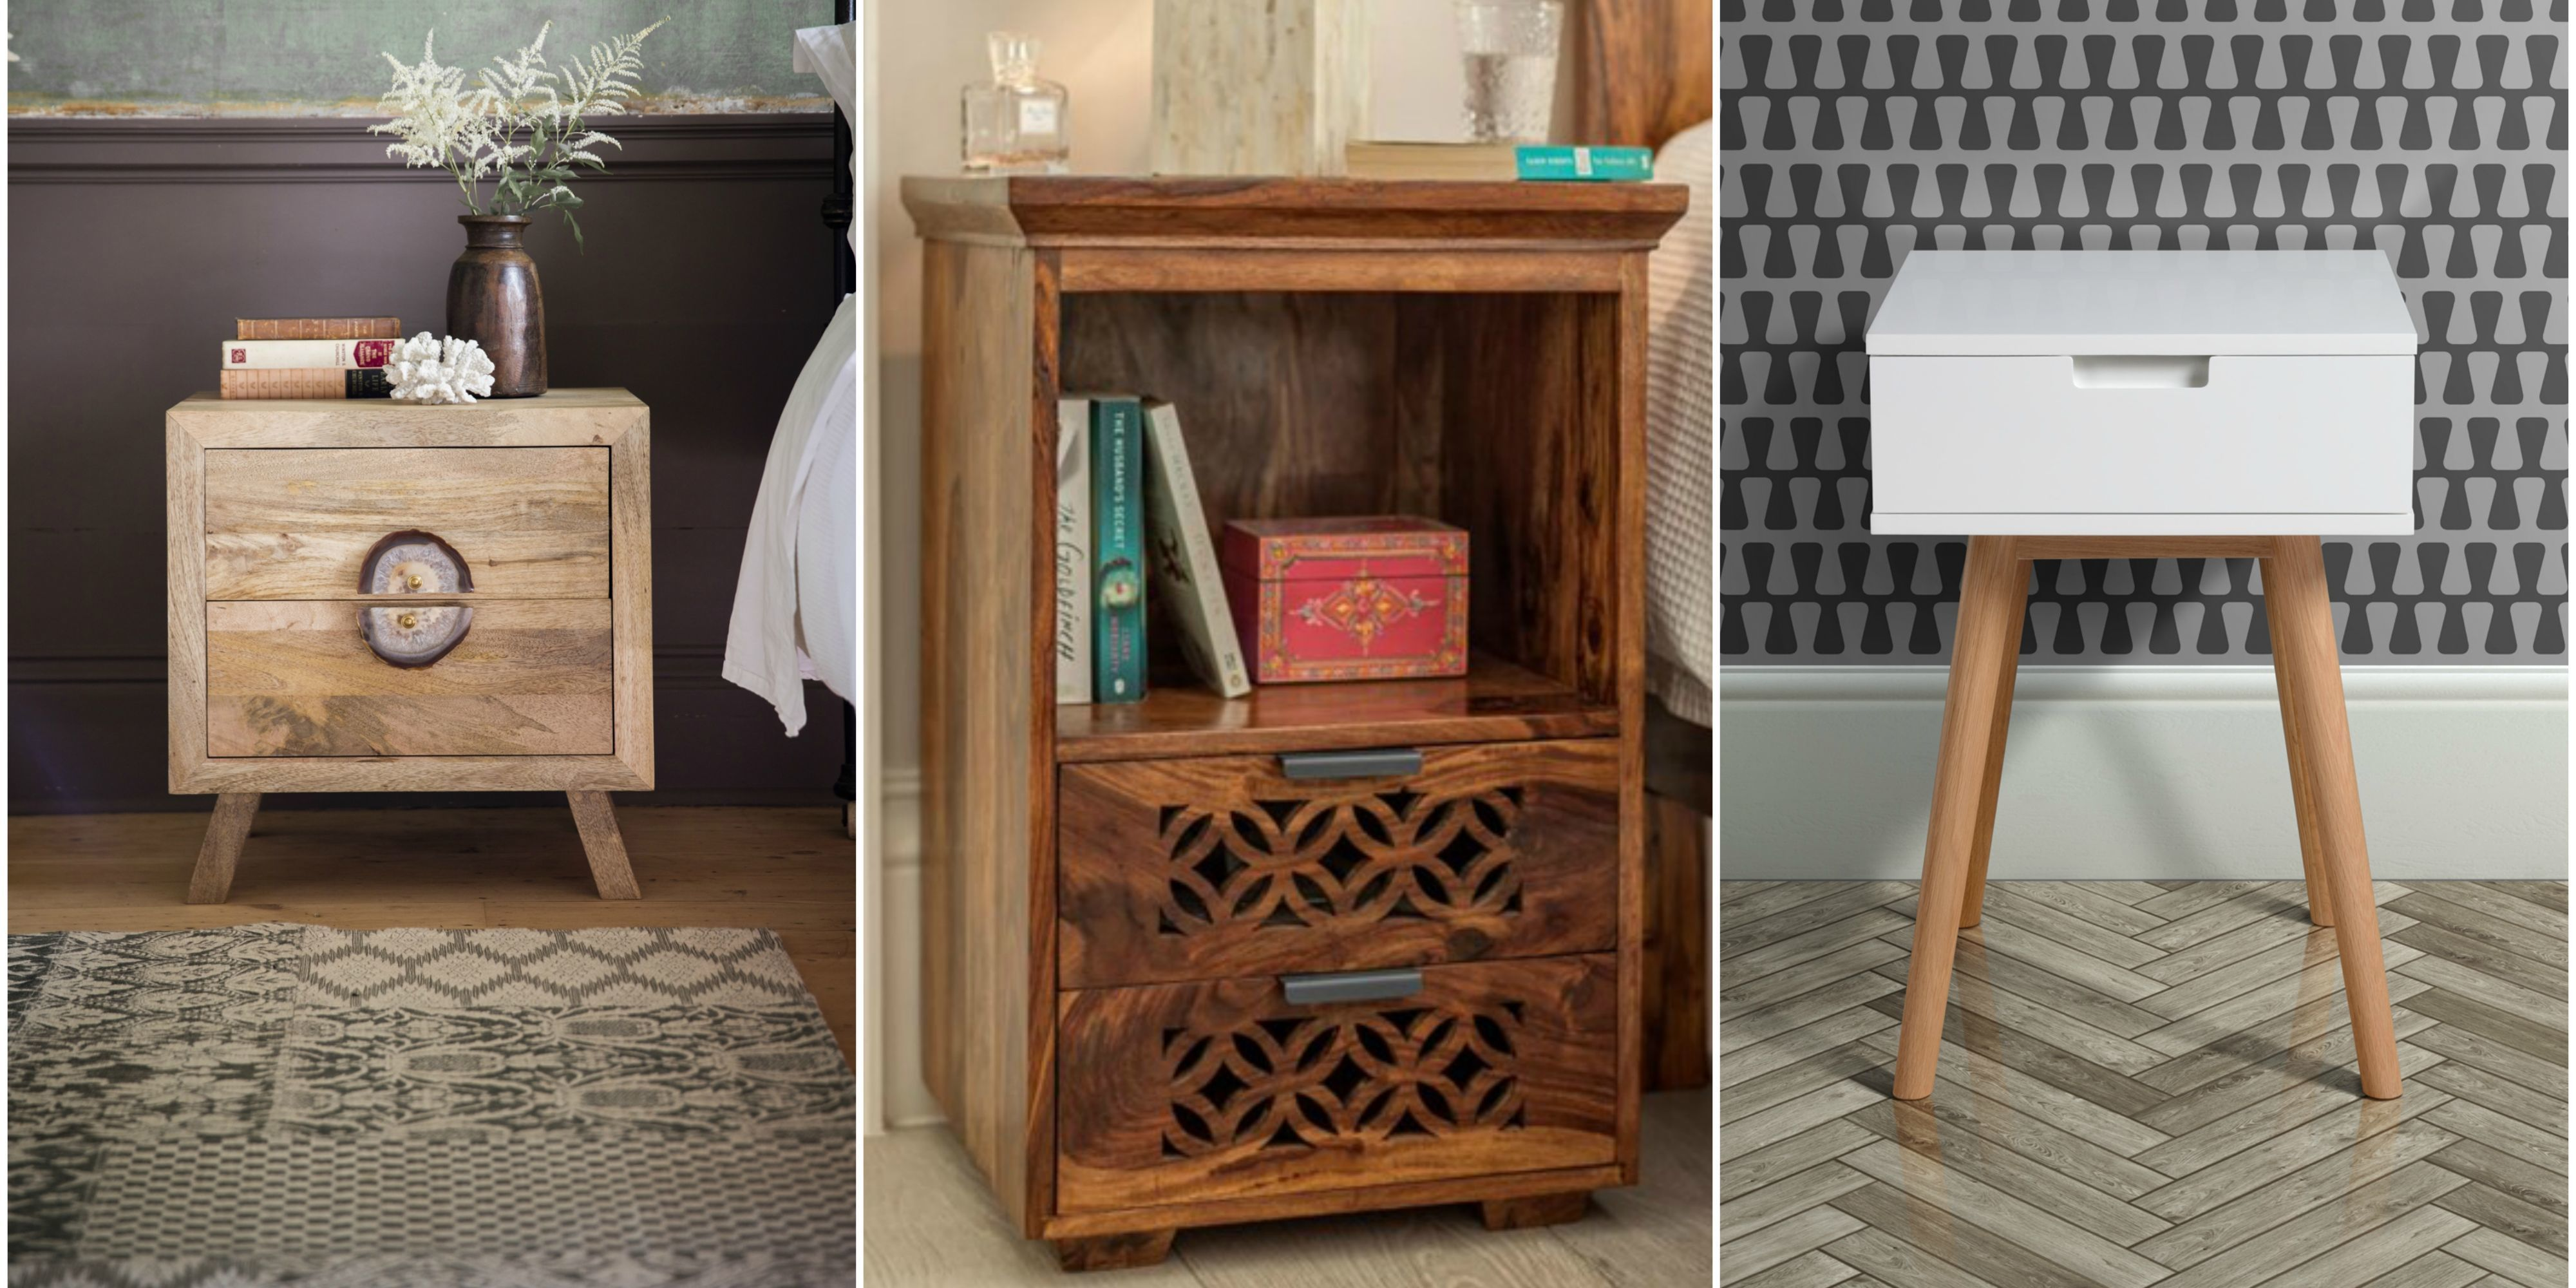 Take a look at these beautiful bedside tables and cabinets ranging from Scandi style to wooden handcrafted designs. & Best nightstands to add character to your bedroom